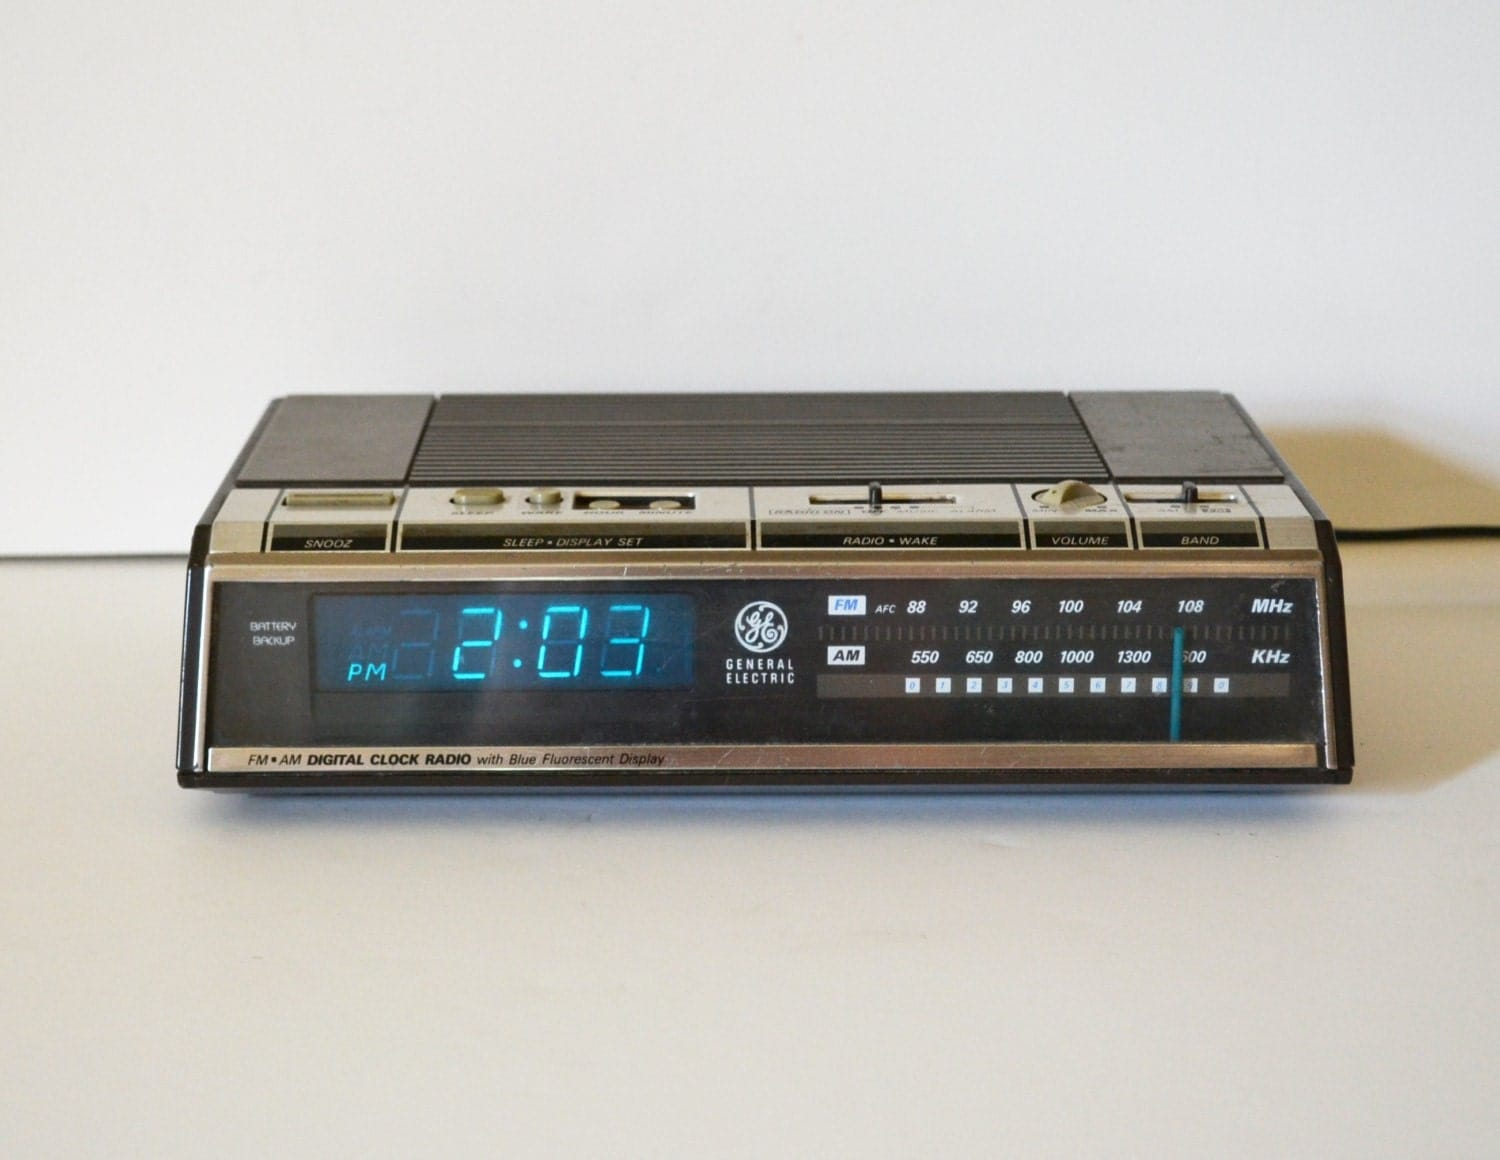 vintage digital alarm clock radio vintage digital alarm clock. Black Bedroom Furniture Sets. Home Design Ideas